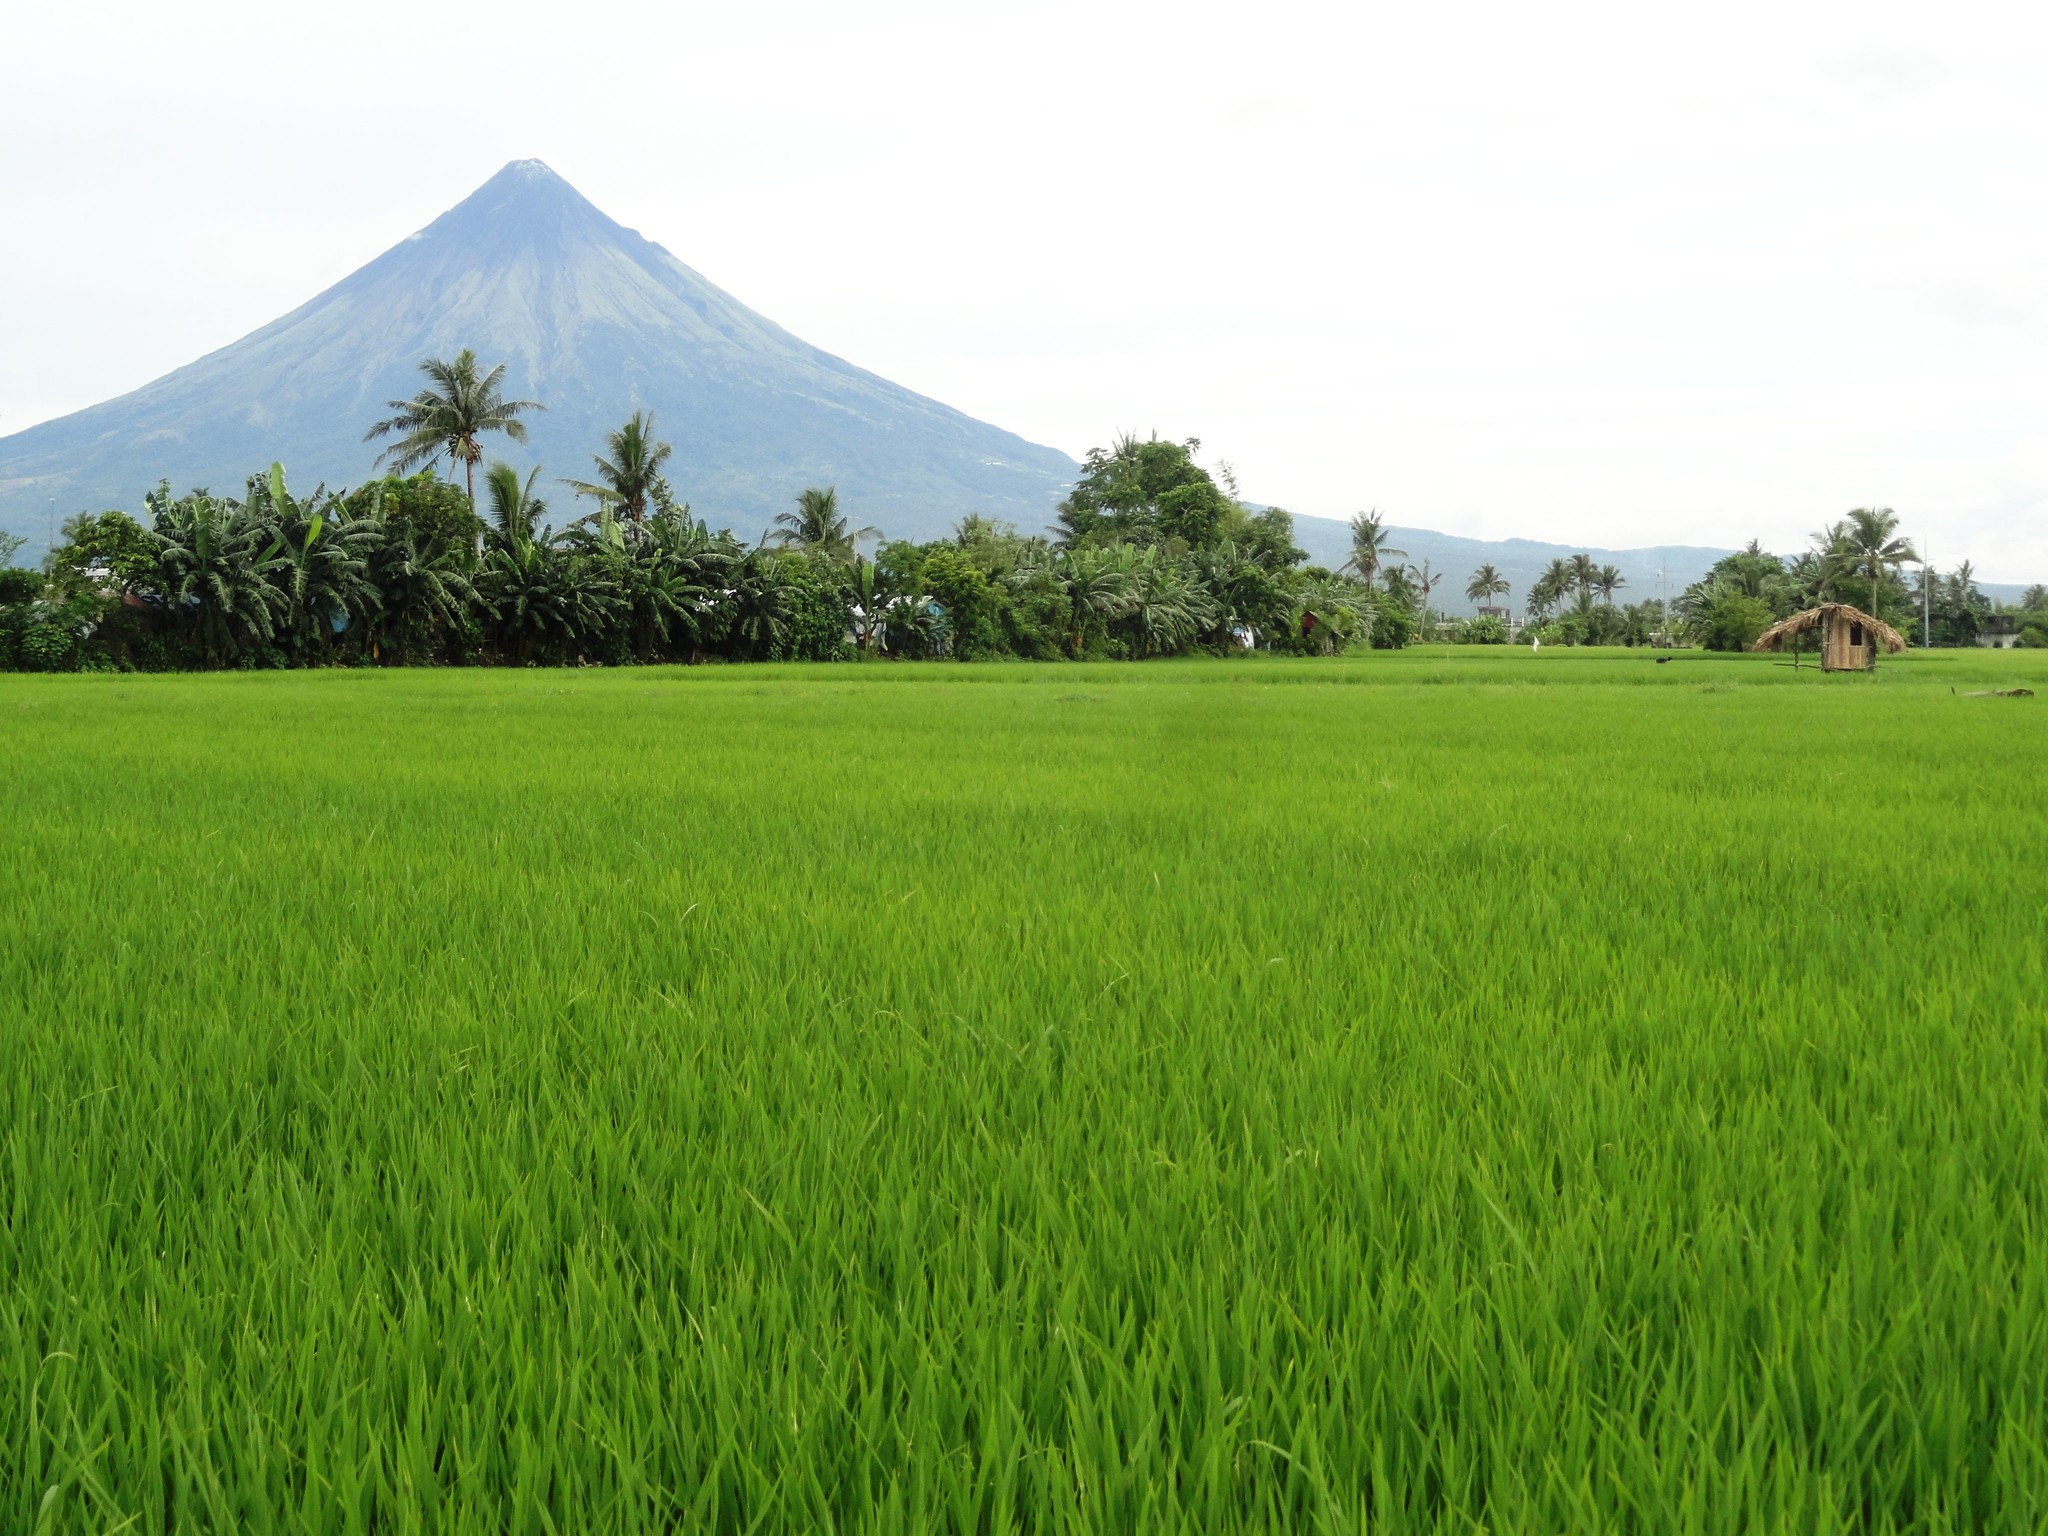 List of Best Volcano destinations in the Philippines4